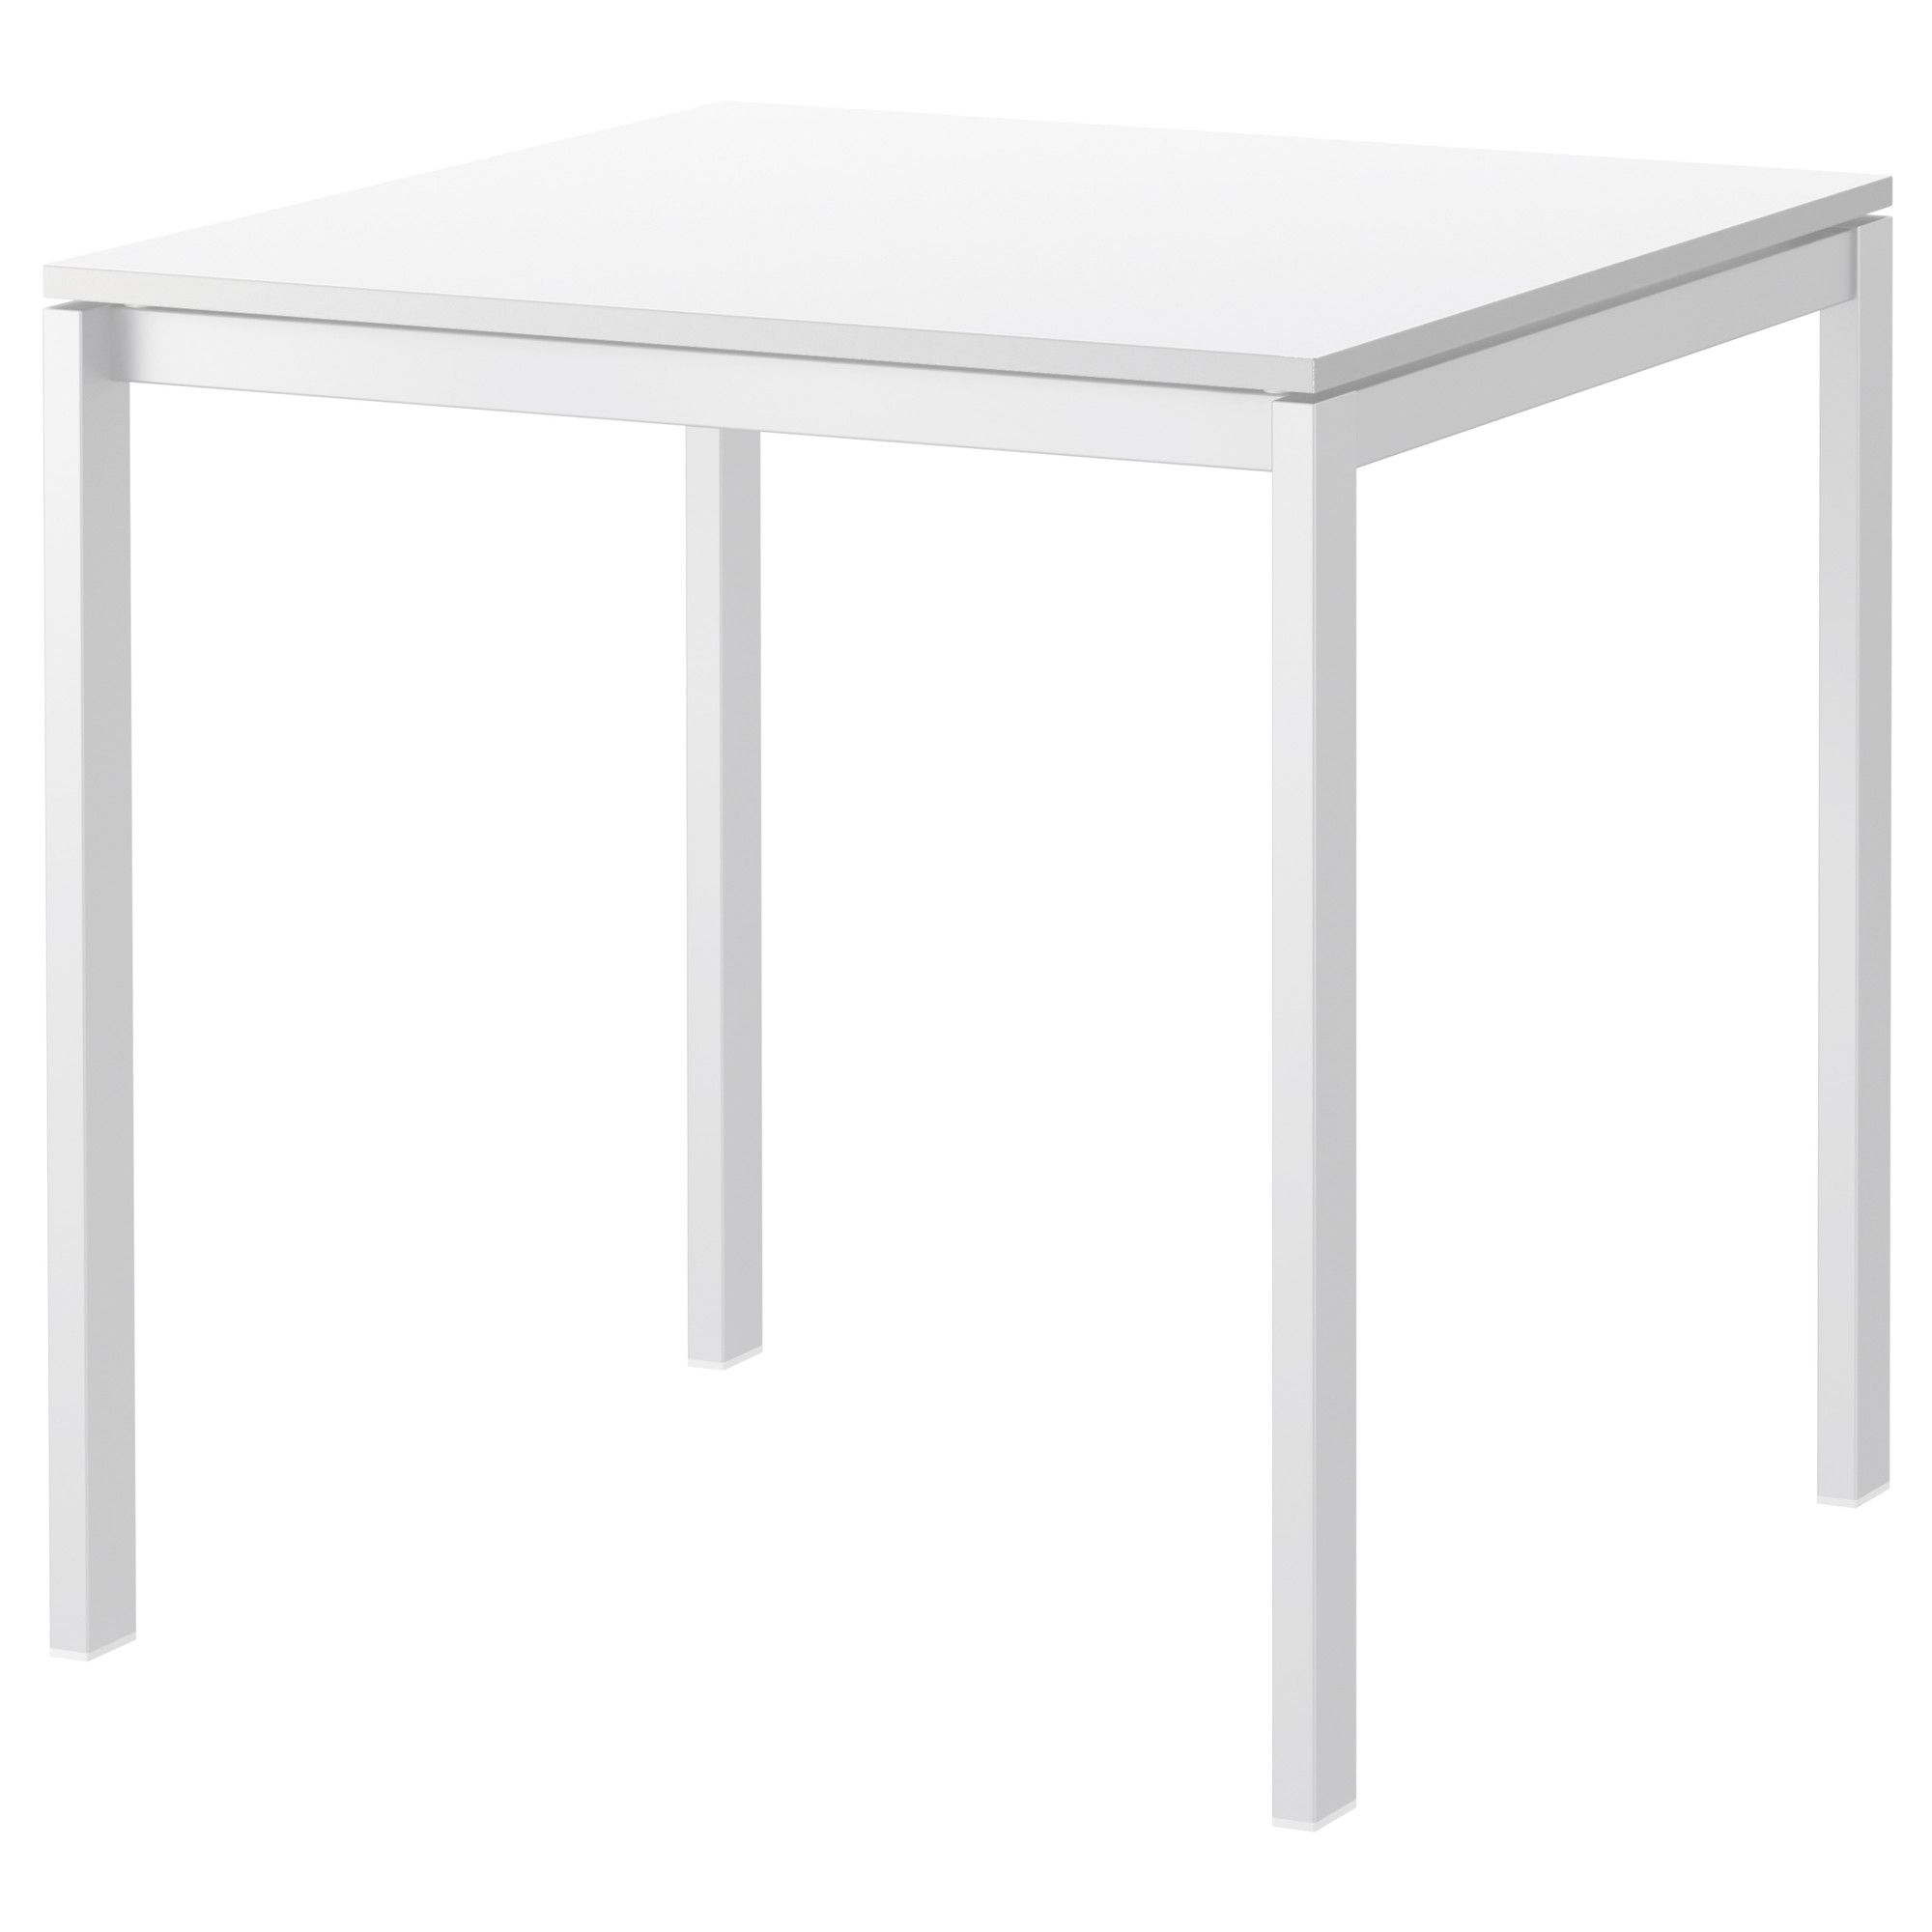 Melltorp Table White 29 1 2x29 1 2 With Images Ikea Table